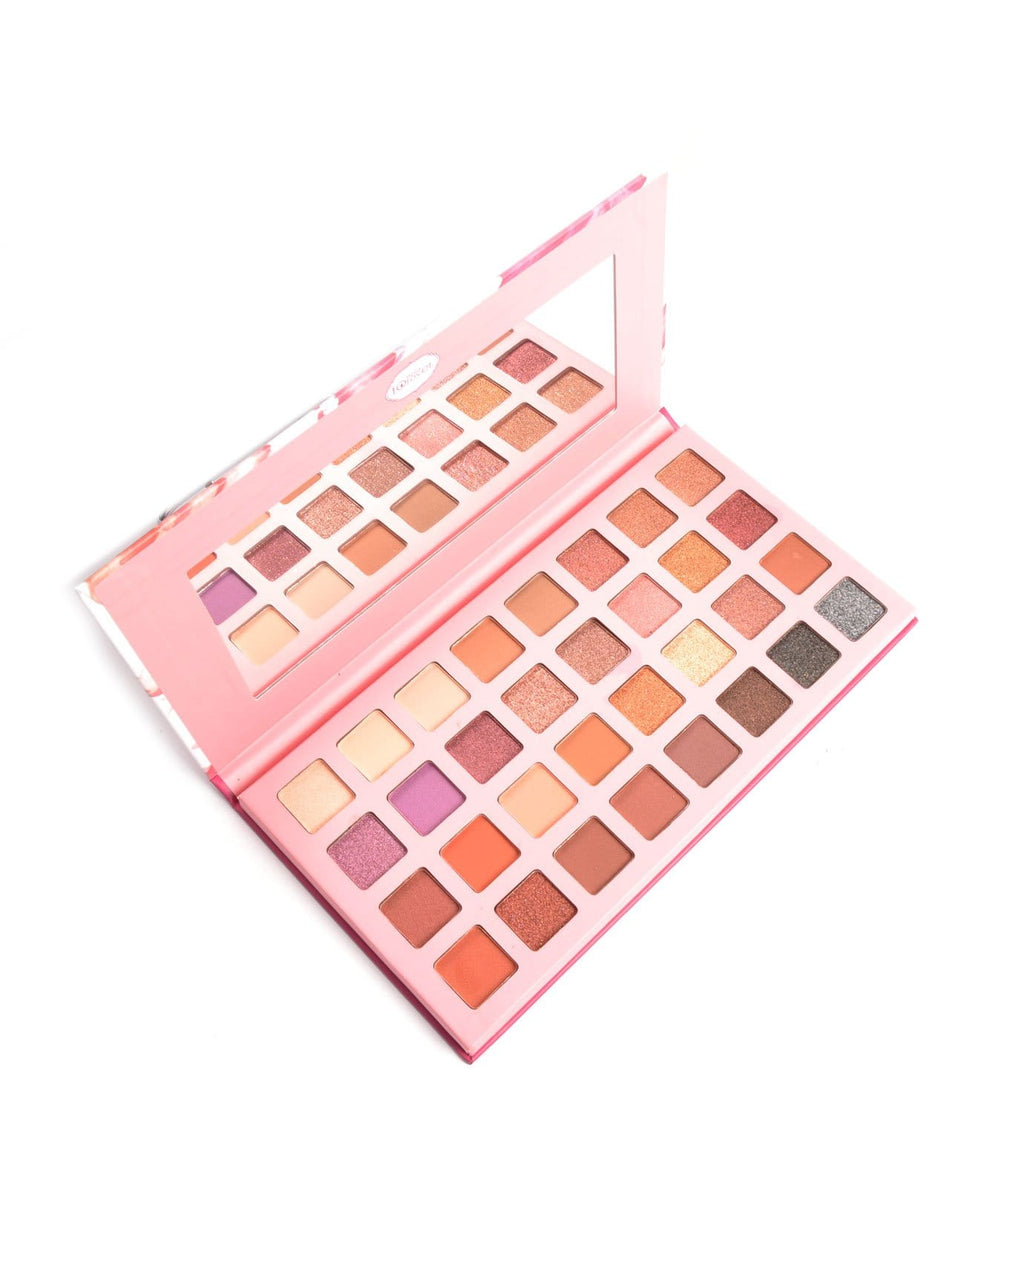 Bella Forever Popsicle- 32 Eyeshadow Palette, COSMETICS